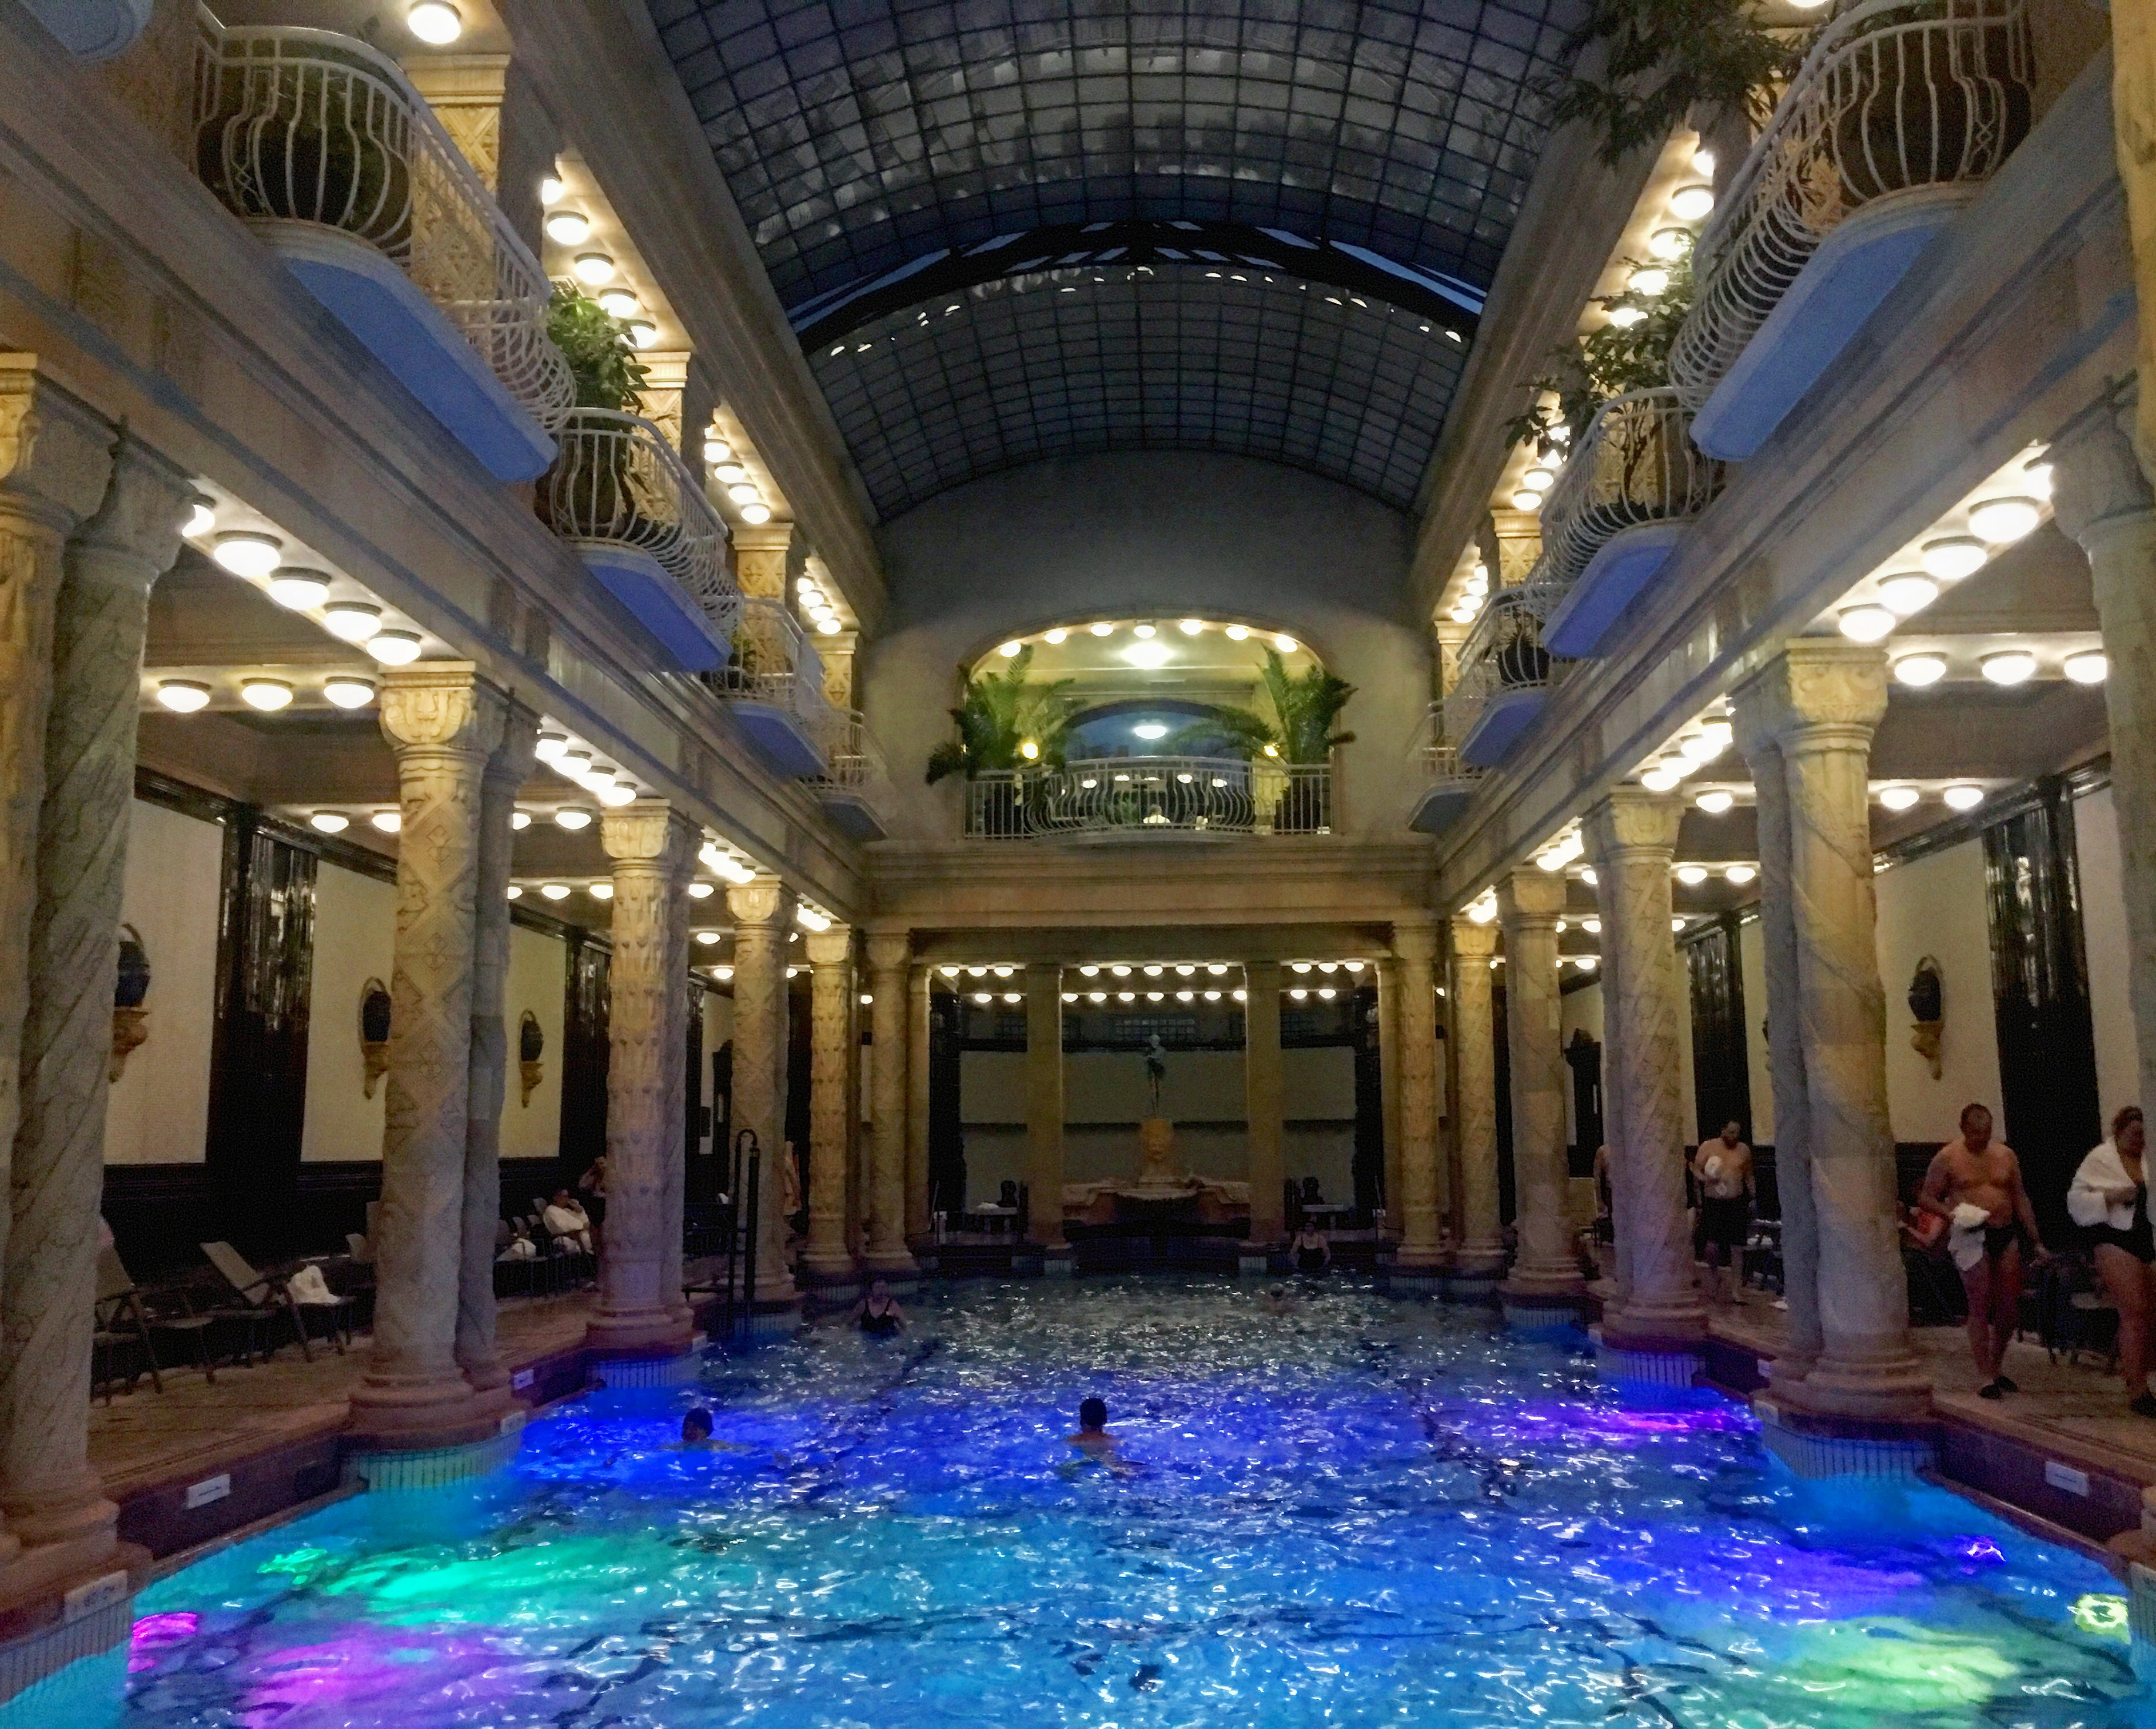 Budapest is famous for its thermal spas- Gellert Spa.